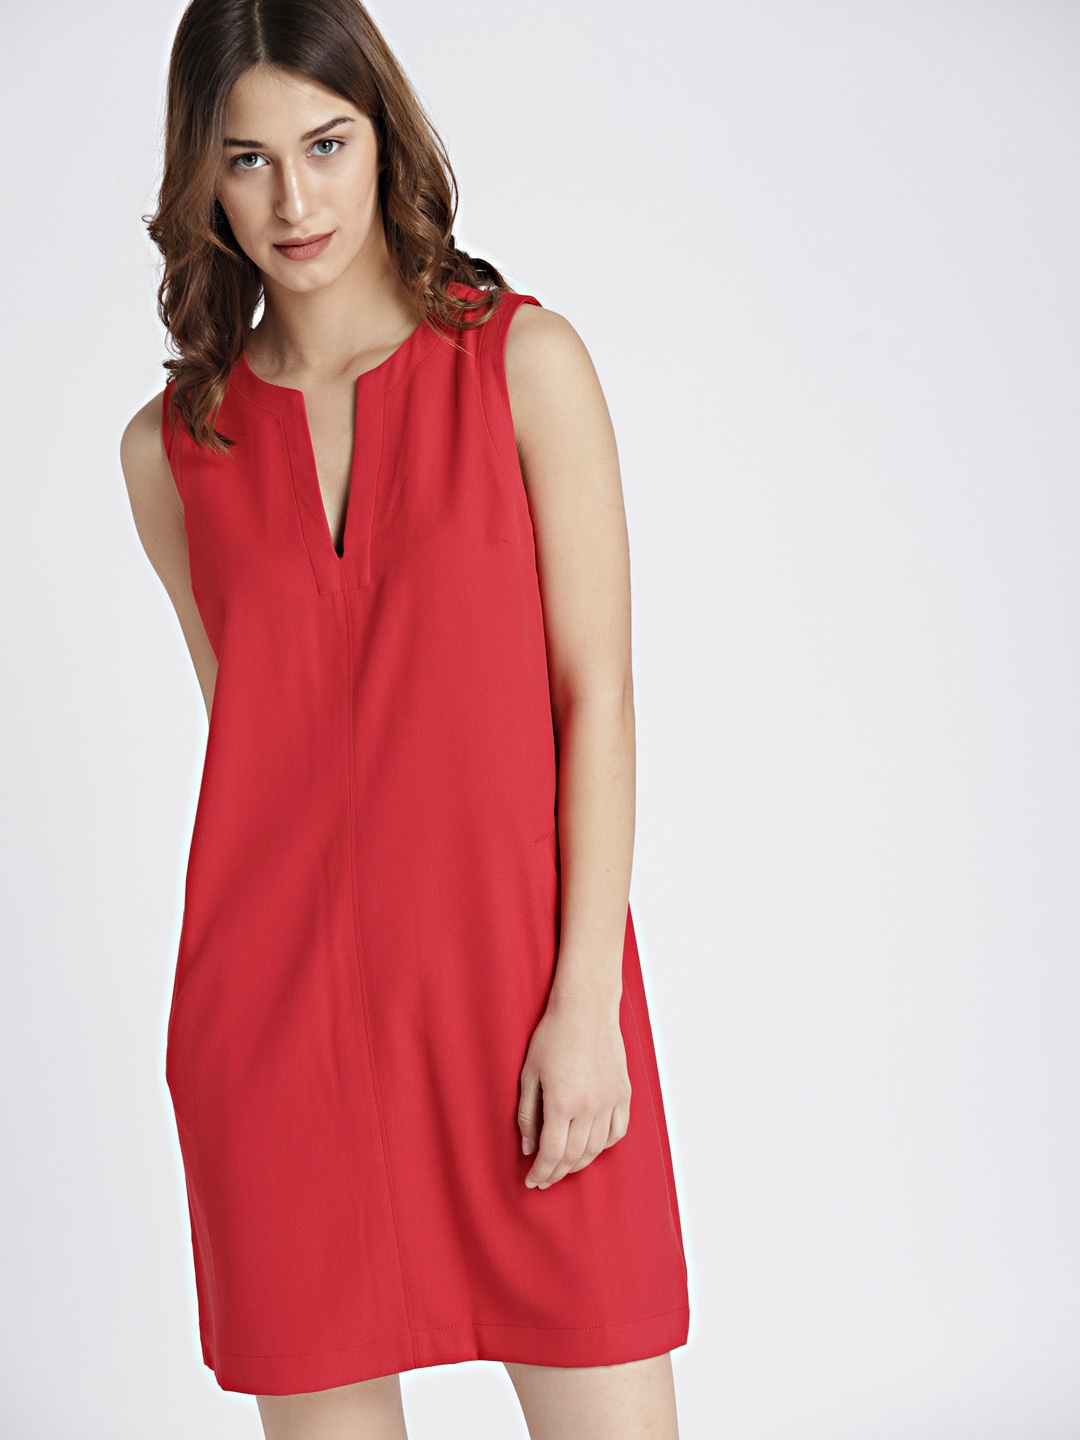 f72014dc9ed533 Buy GAP Women Red Solid A Line Dress - Dresses for Women 7823197 ...